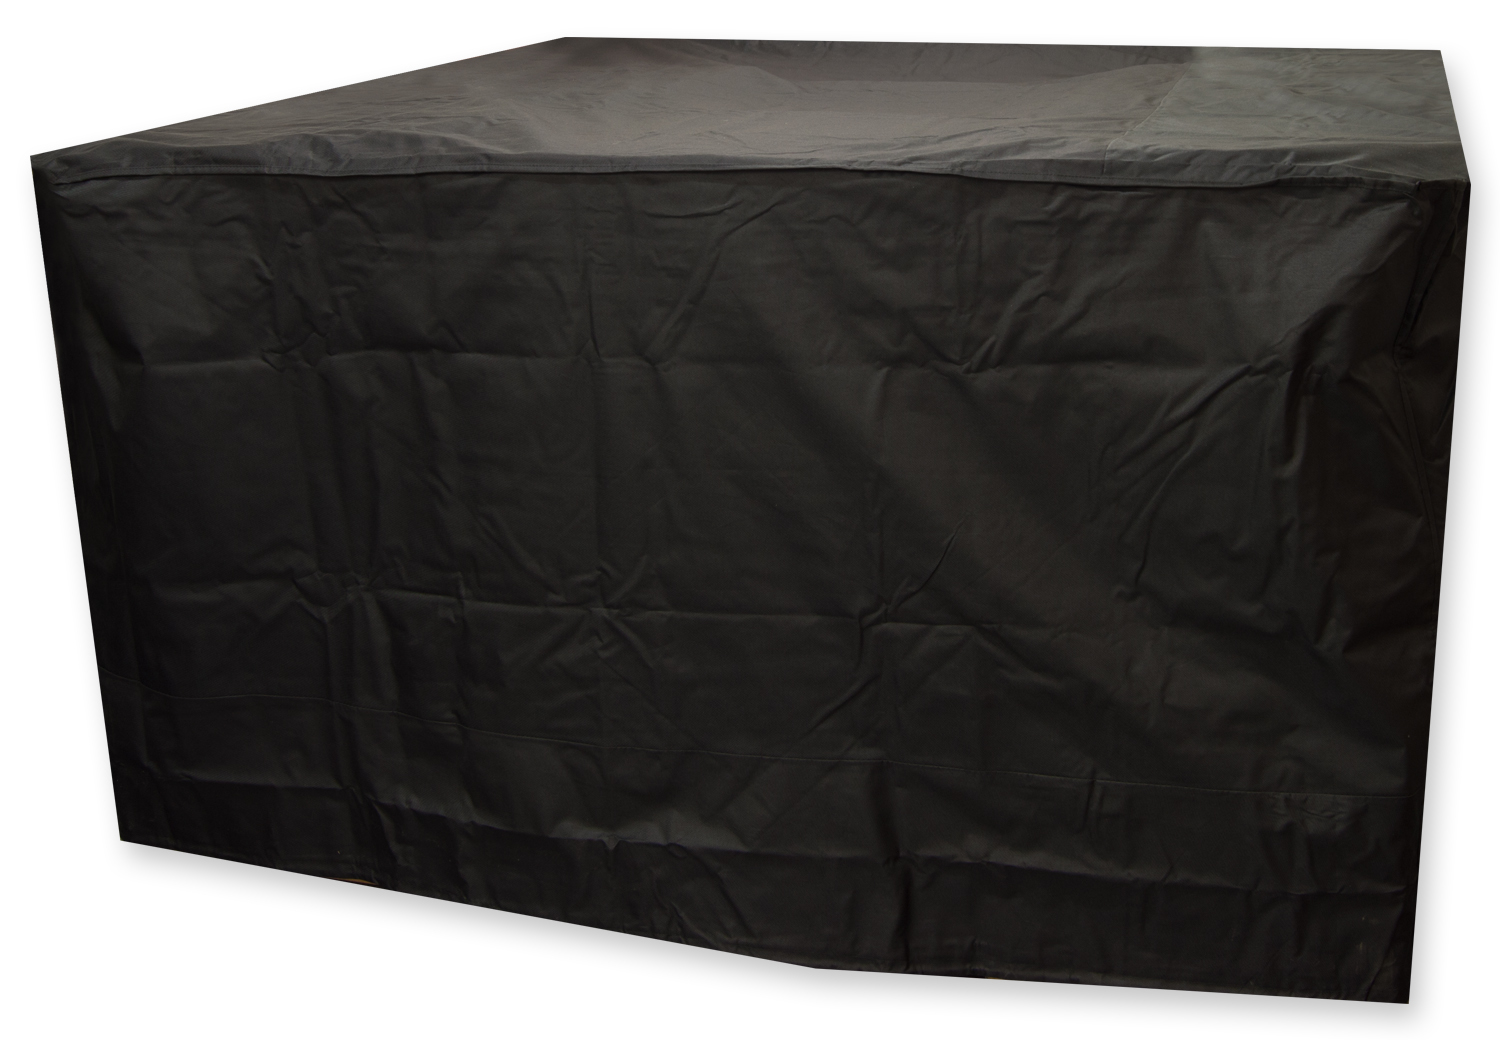 Oxbridge black medium oval waterproof outdoor garden patio for Outdoor furniture covers in black